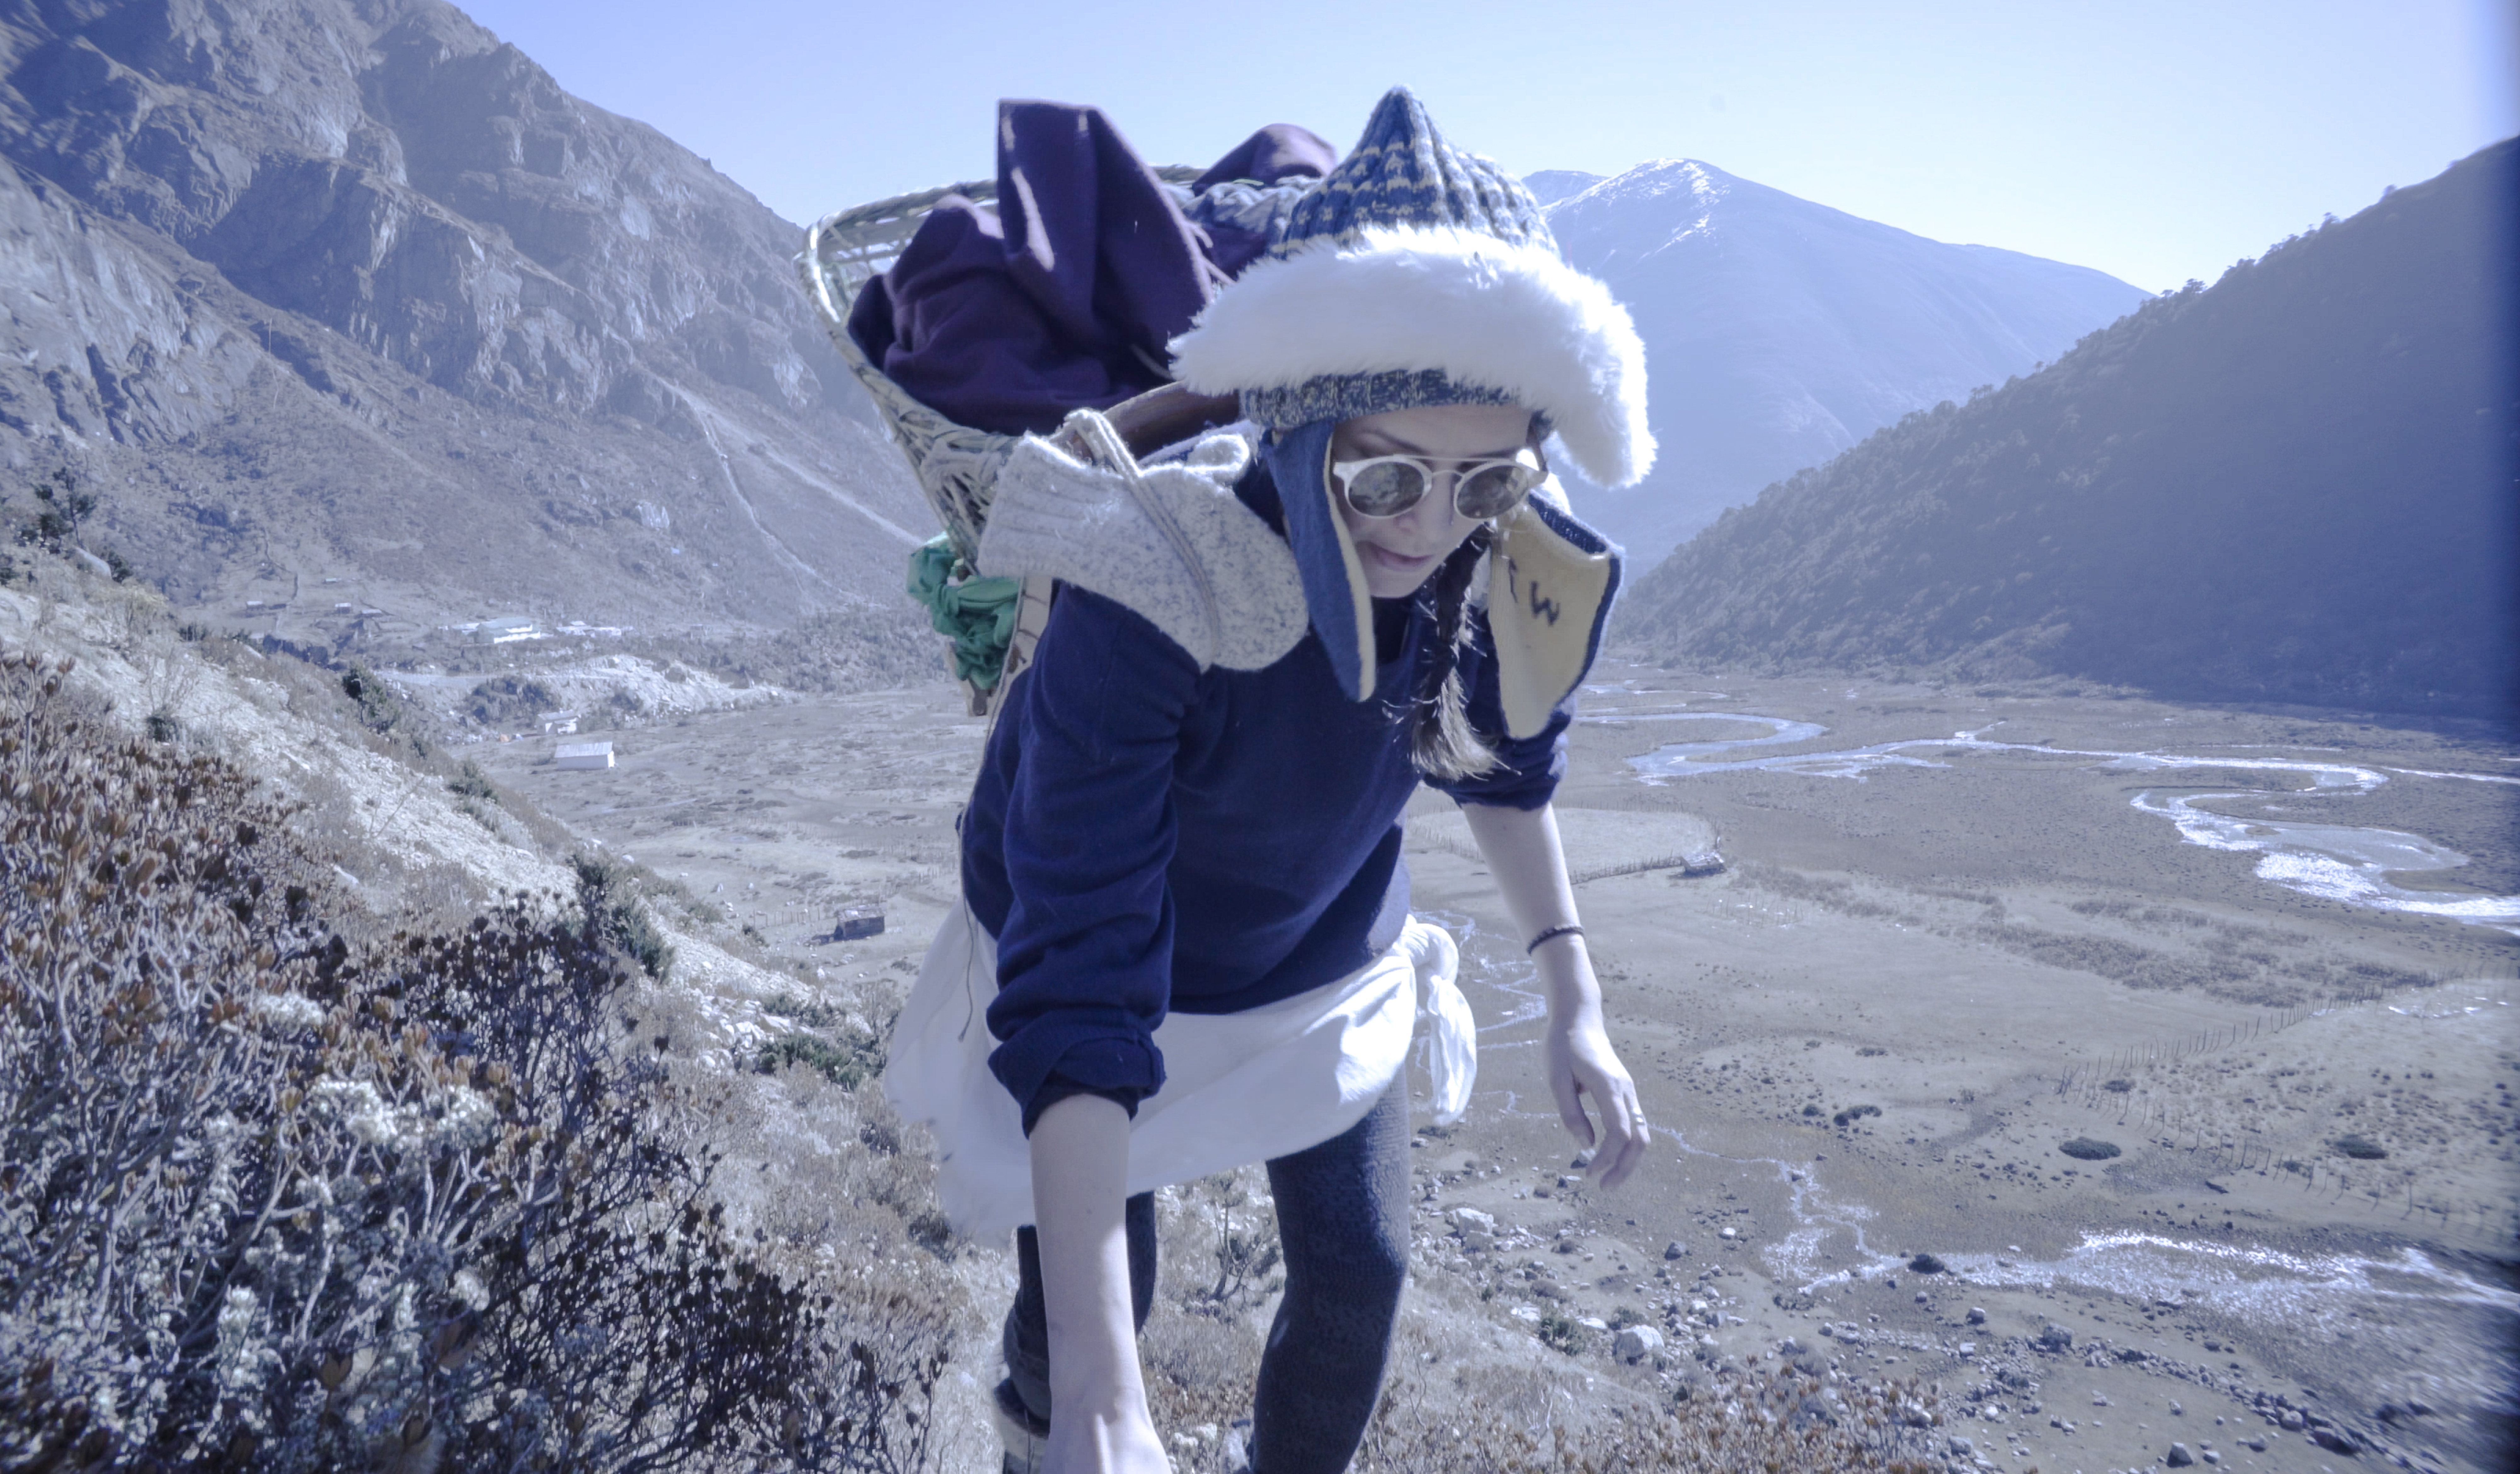 Adventurer Elise Wortley replicates historic Himalayan trek